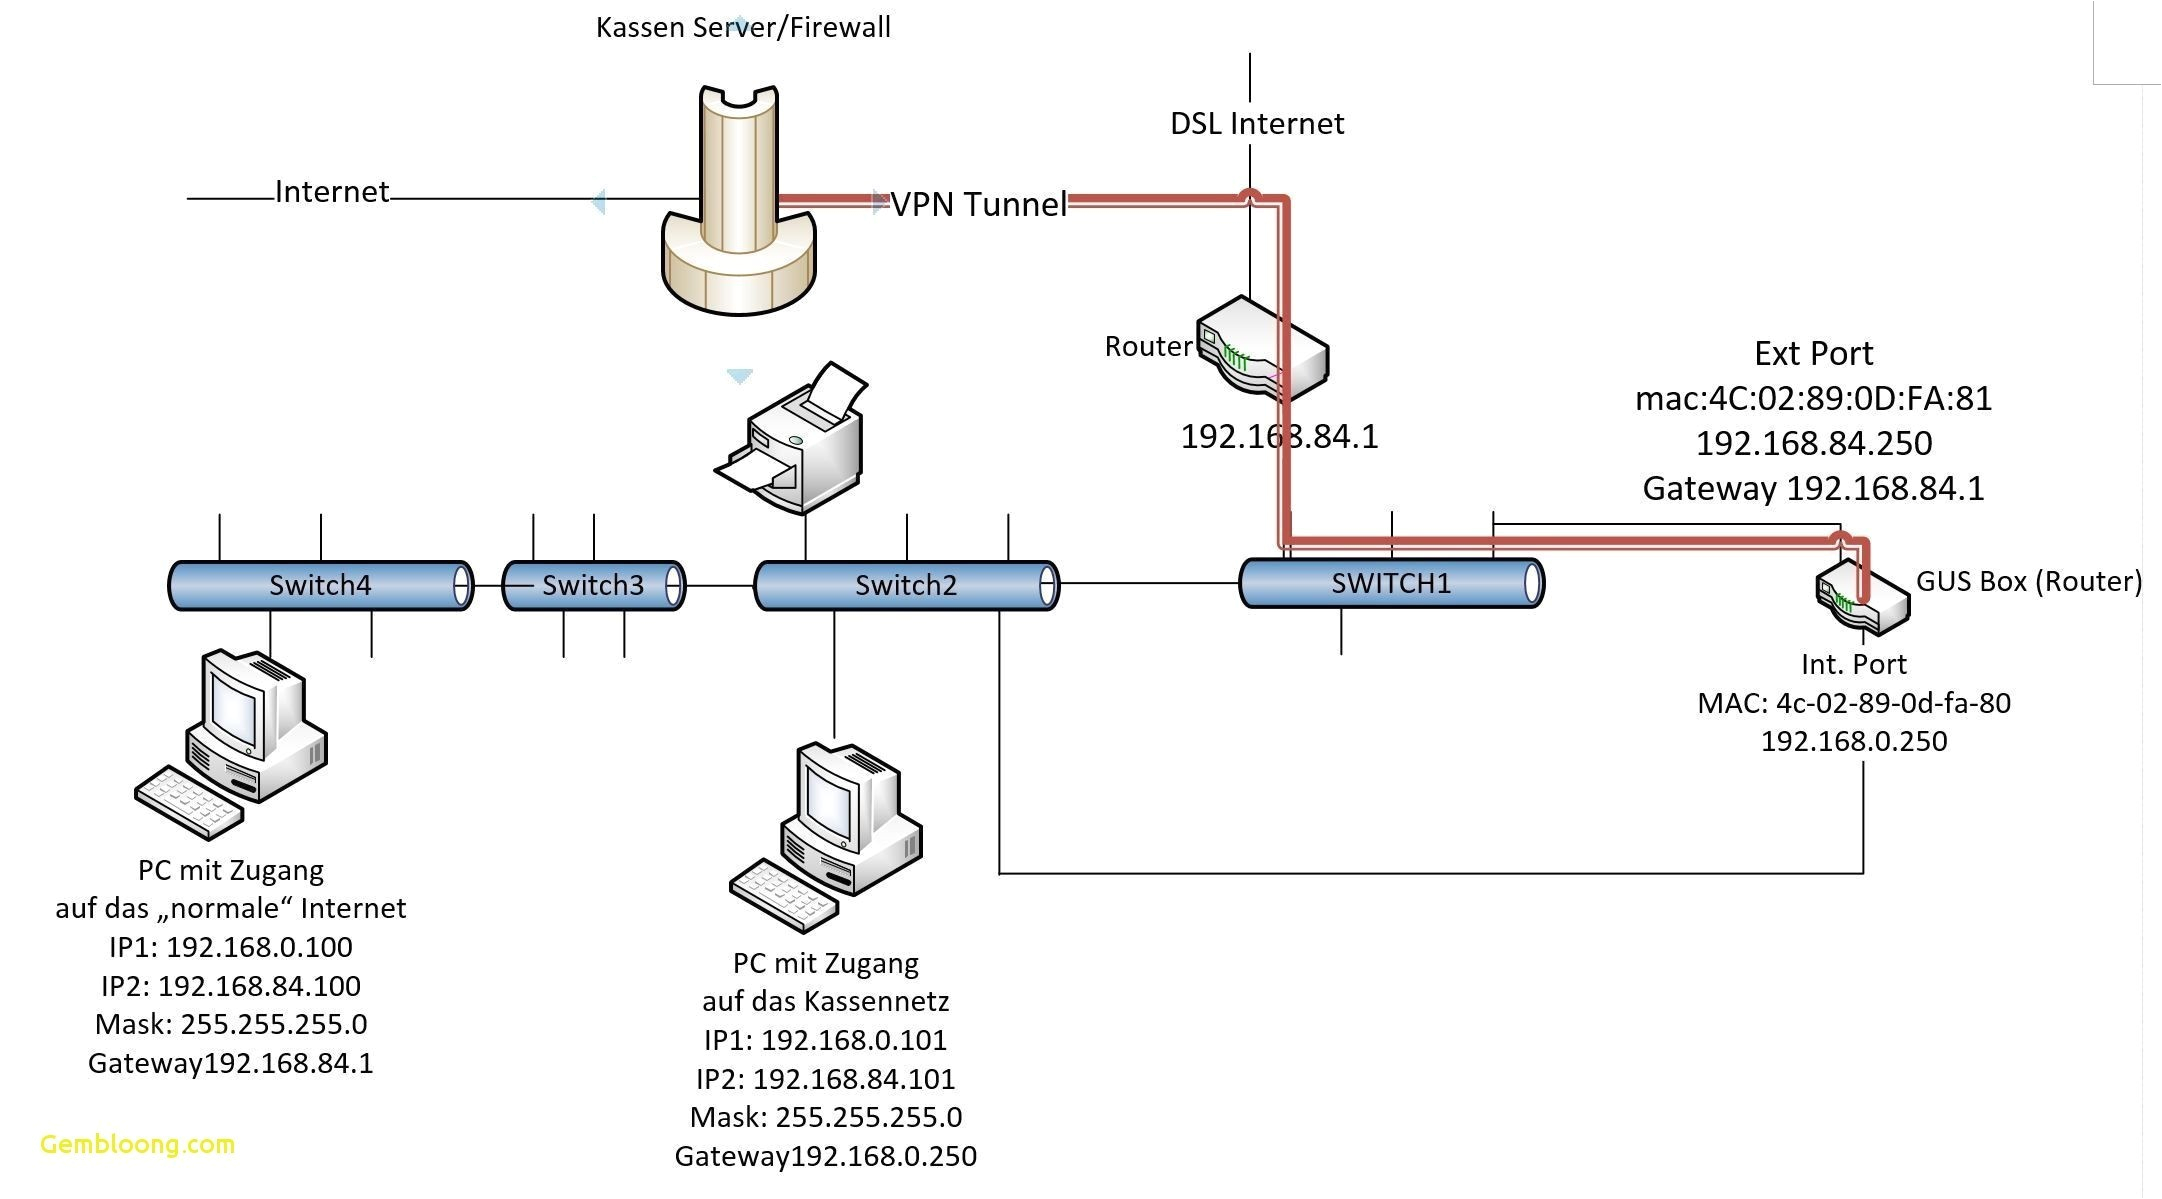 wiring diagram for home network house wiring diagram sample best mon wiring diagrams sample pdf home of wiring diagram for home network jpg